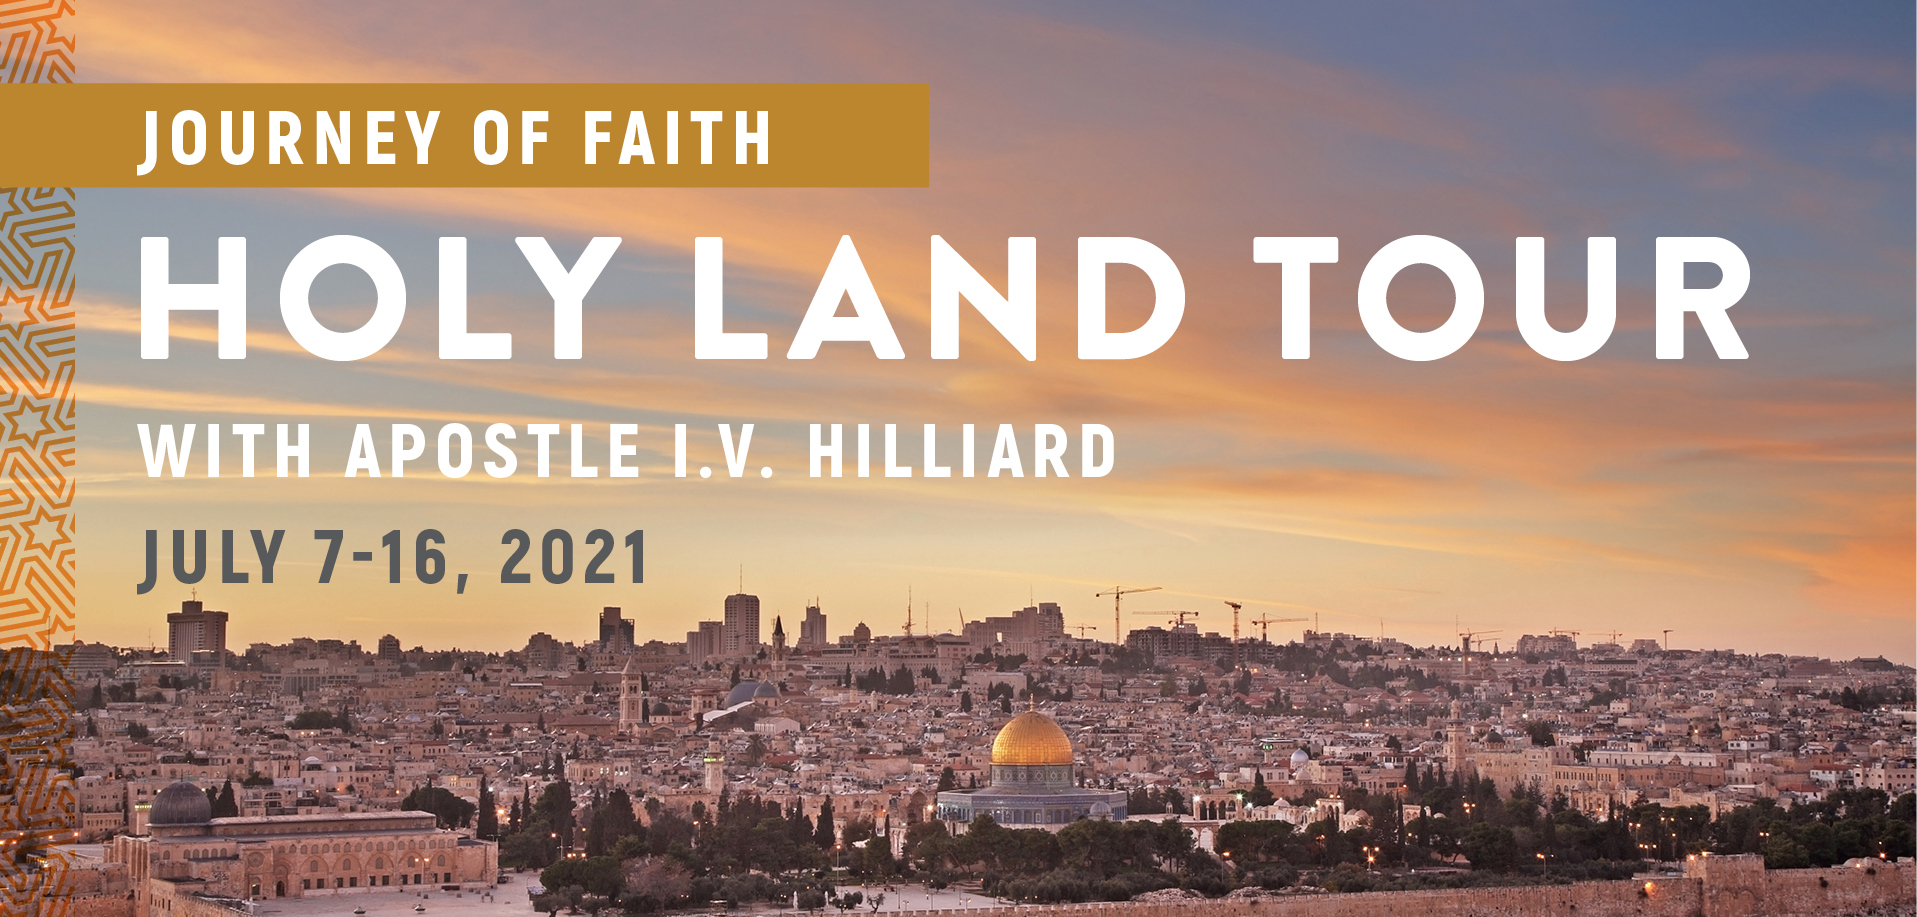 Take a Christian TourWOX with Journey of Faith Holy Land Tour with Apostle I.V. Hilliard - Christian Tour to Israel - July 7-16, 2021